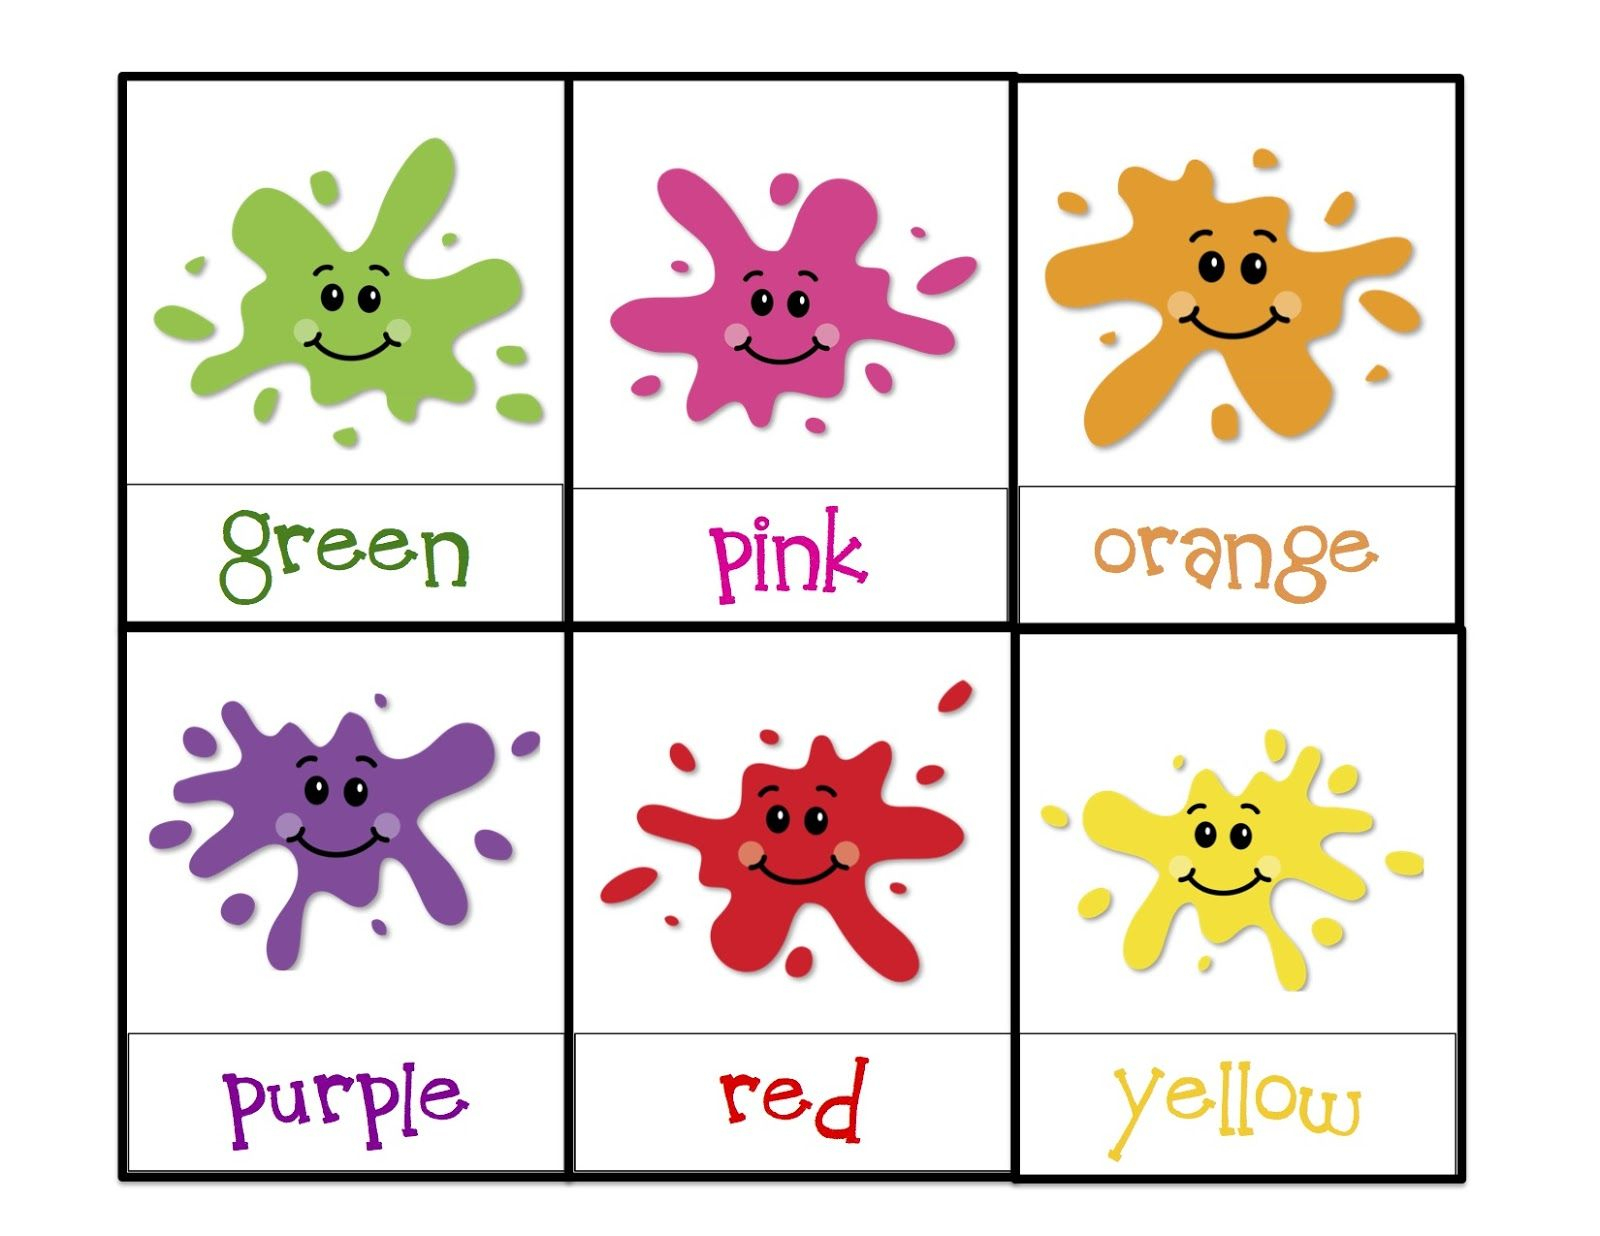 Learning Colors Printable | Children's Activities | Pinterest - Color Recognition Worksheets Free Printable